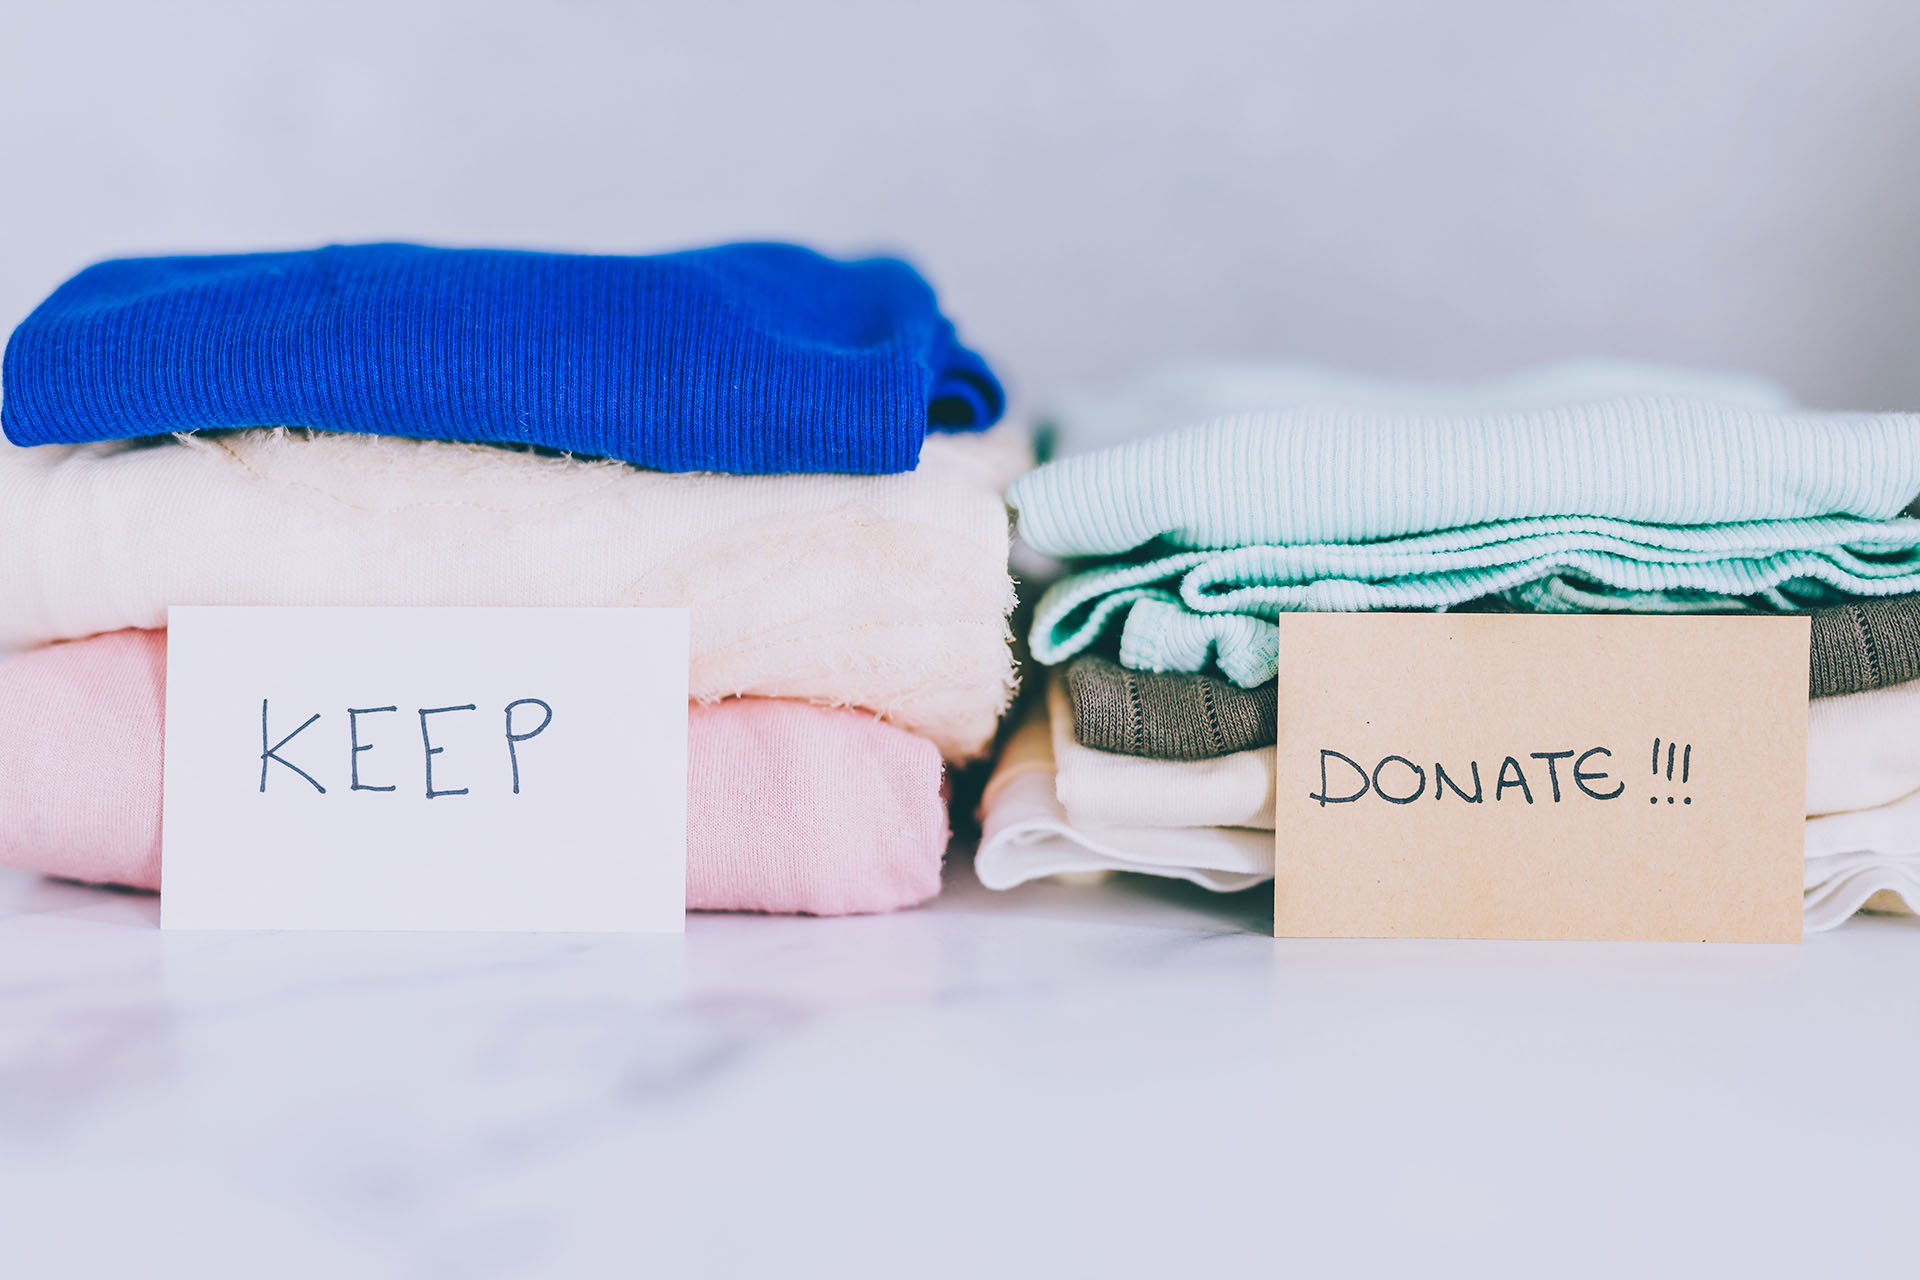 Piles of t-shirts and clothes being sorted into Keep Discard and Donate categories